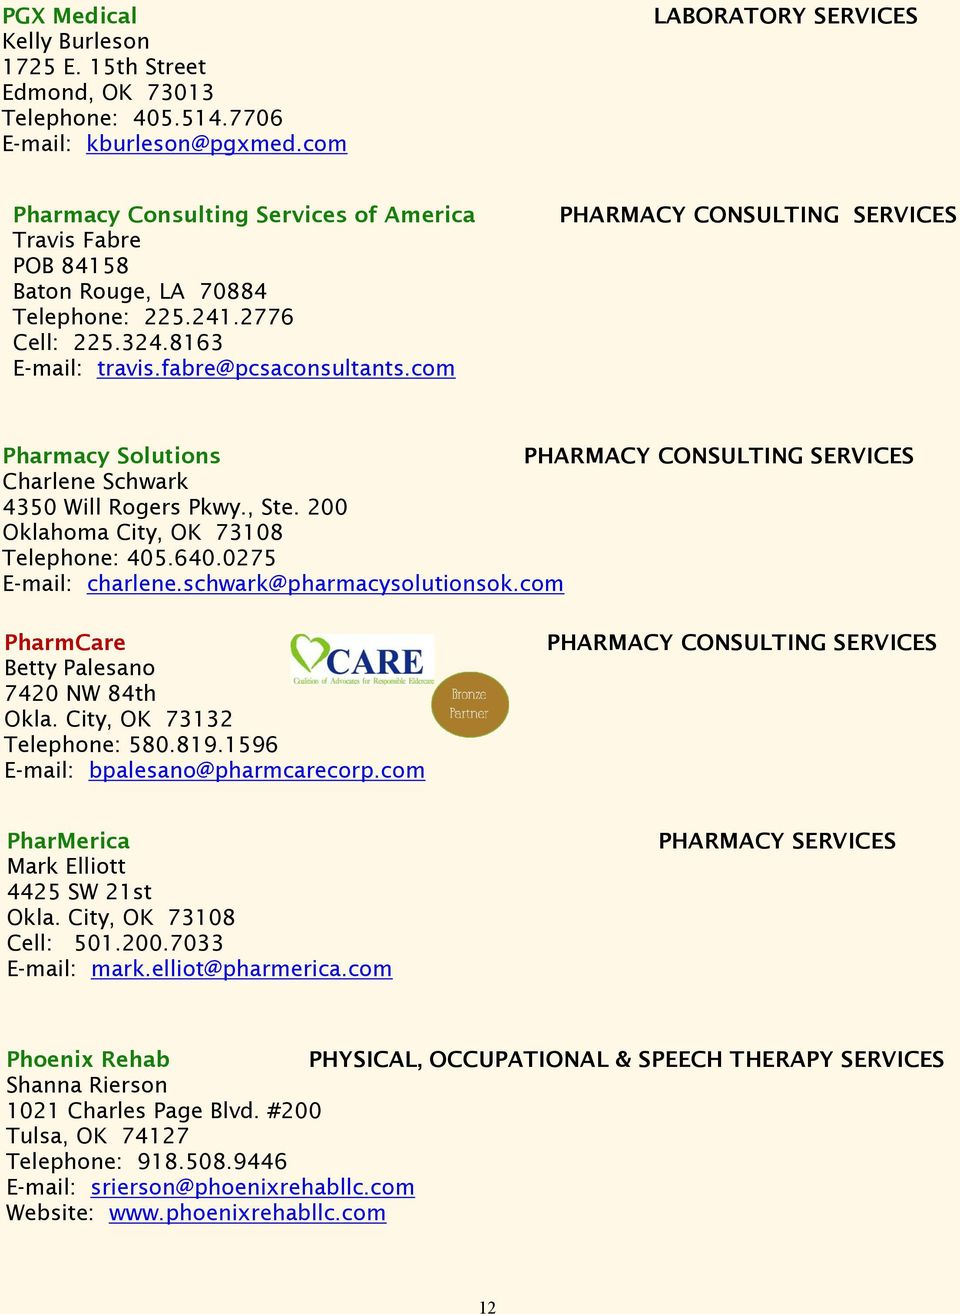 com PHARMACY CONSULTING SERVICES Pharmacy Solutions PHARMACY CONSULTING SERVICES Charlene Schwark 4350 Will Rogers Pkwy., Ste. 200 Oklahoma City, OK 73108 Telephone: 405.640.0275 E-mail: charlene.